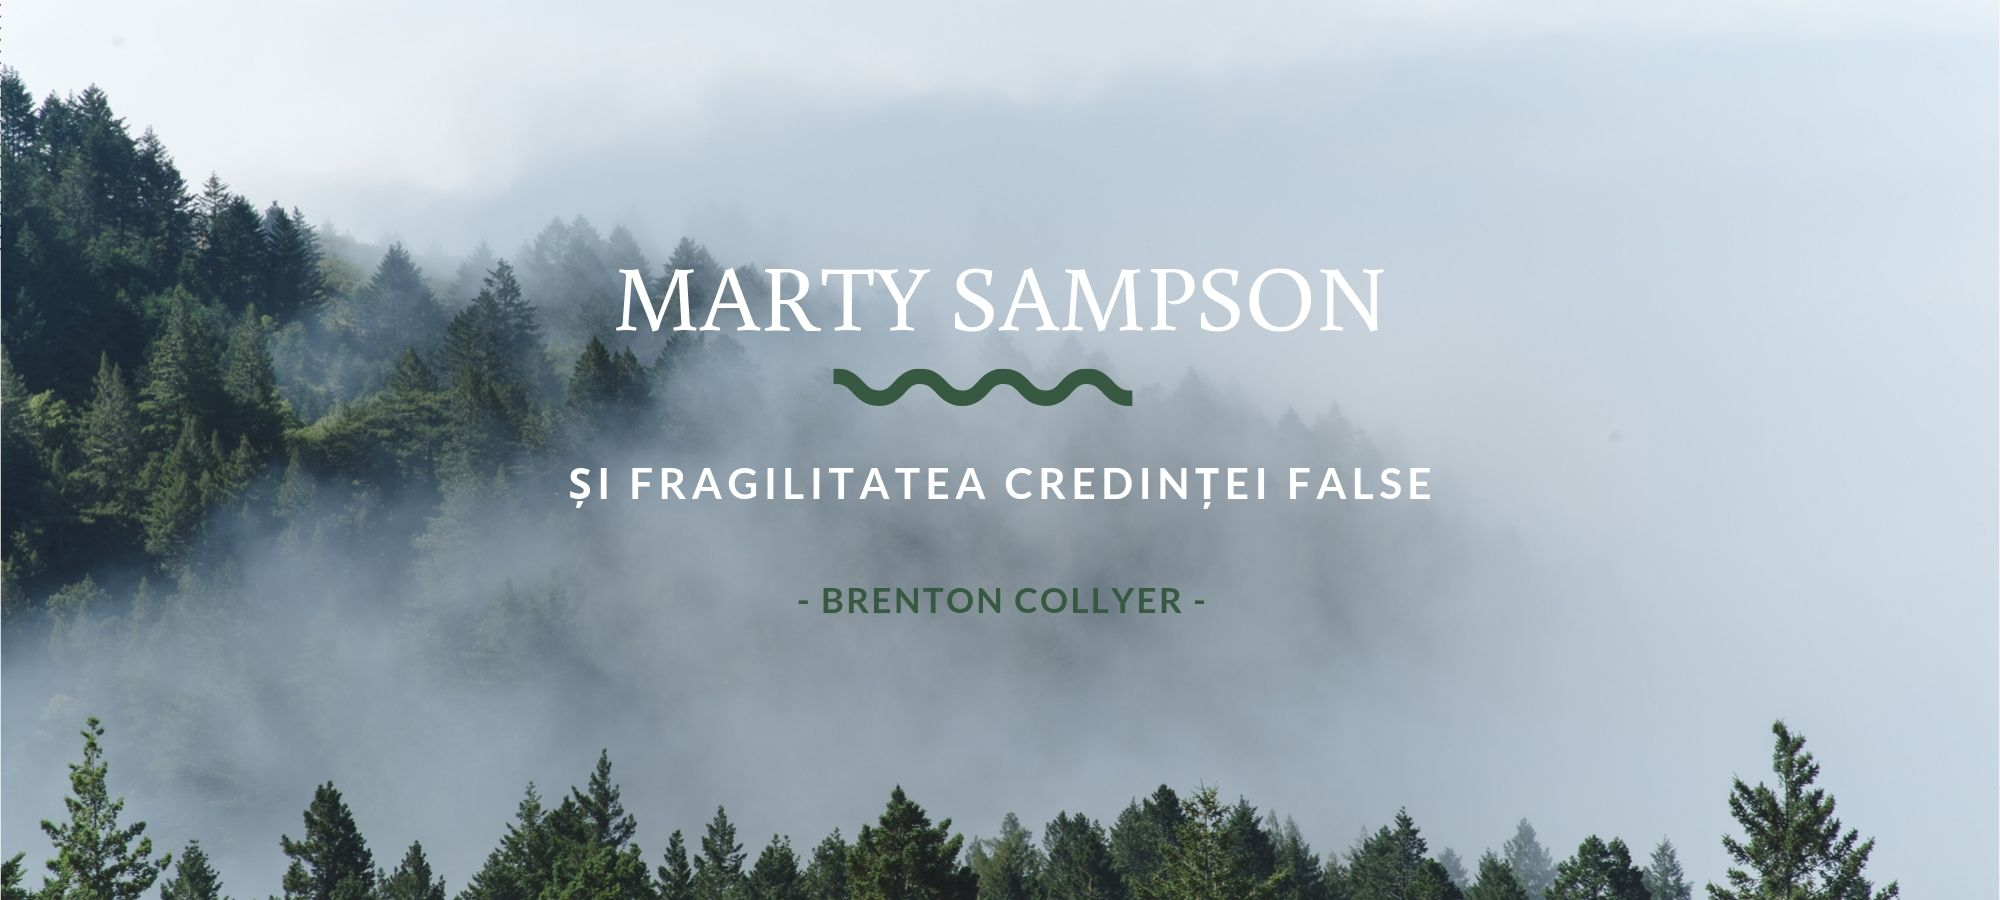 Marty Sampson și fragilitatea credinței false